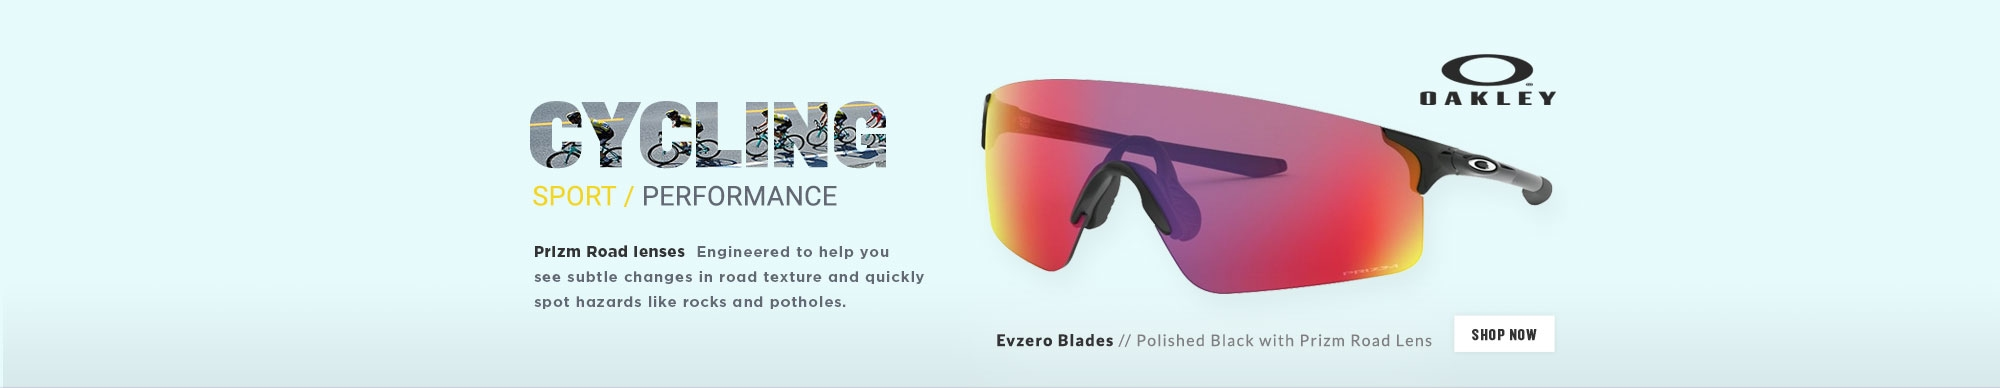 Oakley Cycling | Evzero Blades | Apr 2021